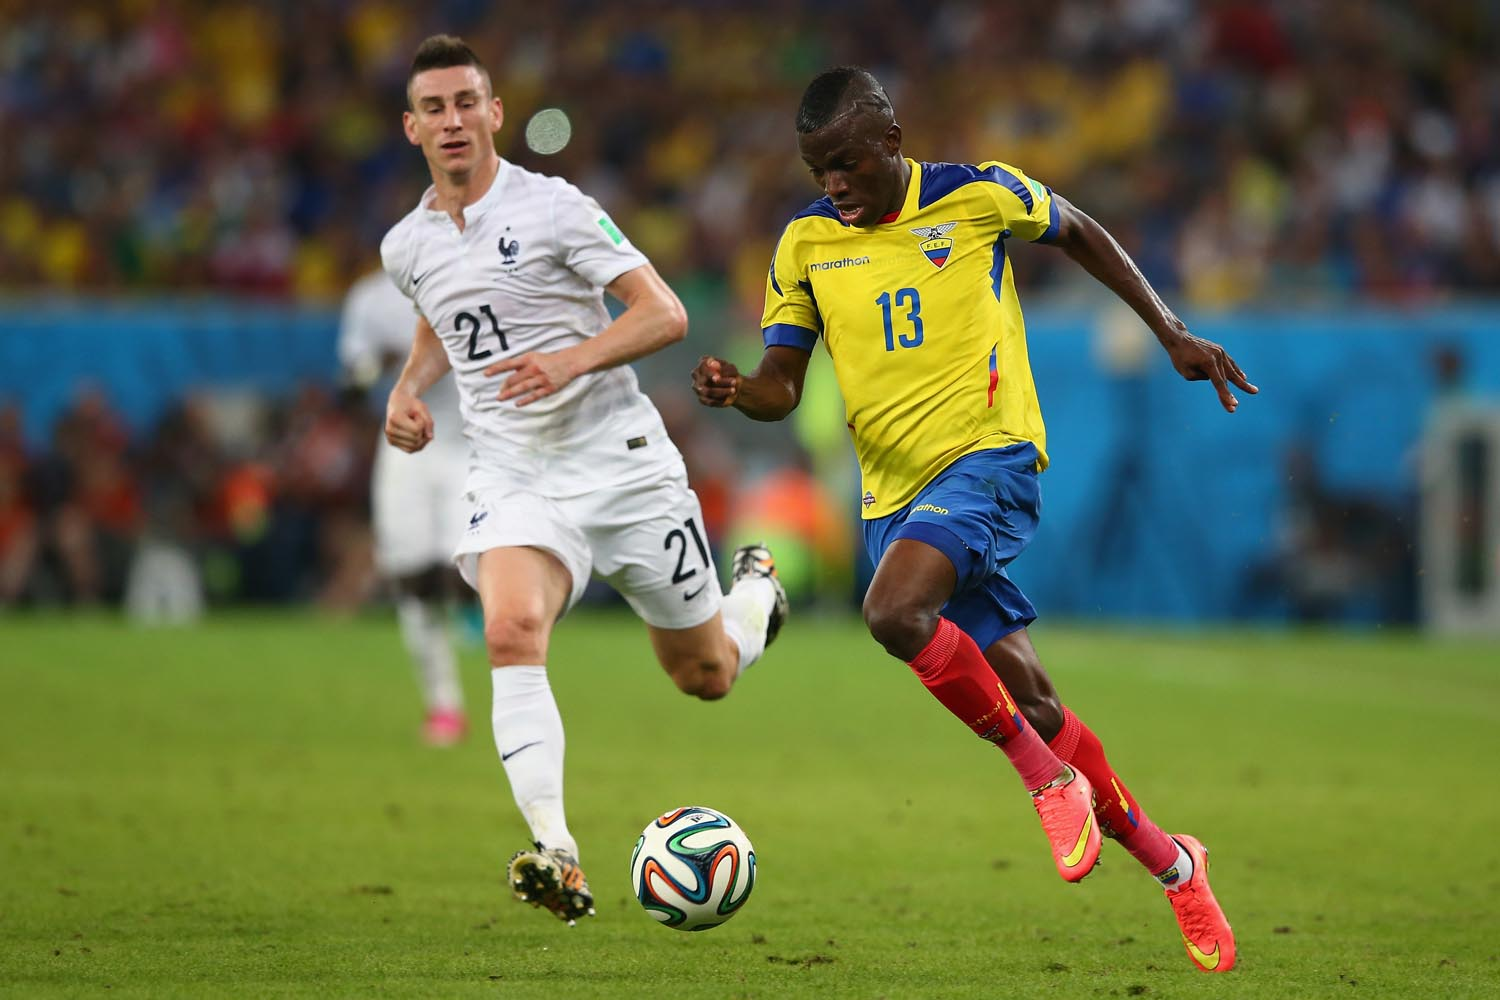 RIO DE JANEIRO, BRAZIL - JUNE 25: Enner Valencia of Ecuador controls the ball against Laurent Koscielny of France during the 2014 FIFA World Cup Brazil Group E match between Ecuador and France at Maracana on June 25, 2014 in Rio de Janeiro, Brazil. (Photo by Julian Finney/Getty Images)